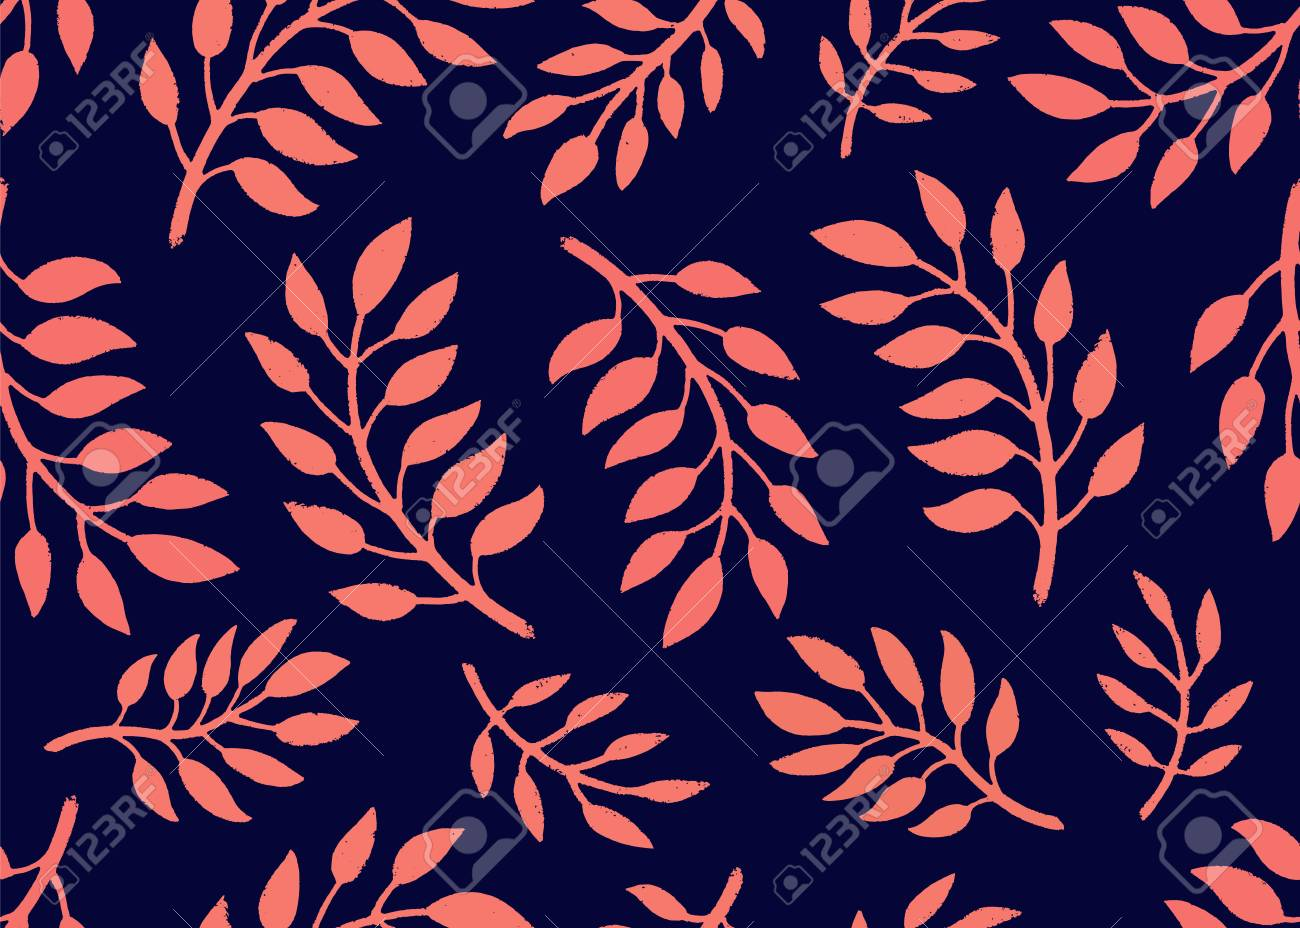 Seamless Floral Pattern Bright Pattern With Branches In Coral